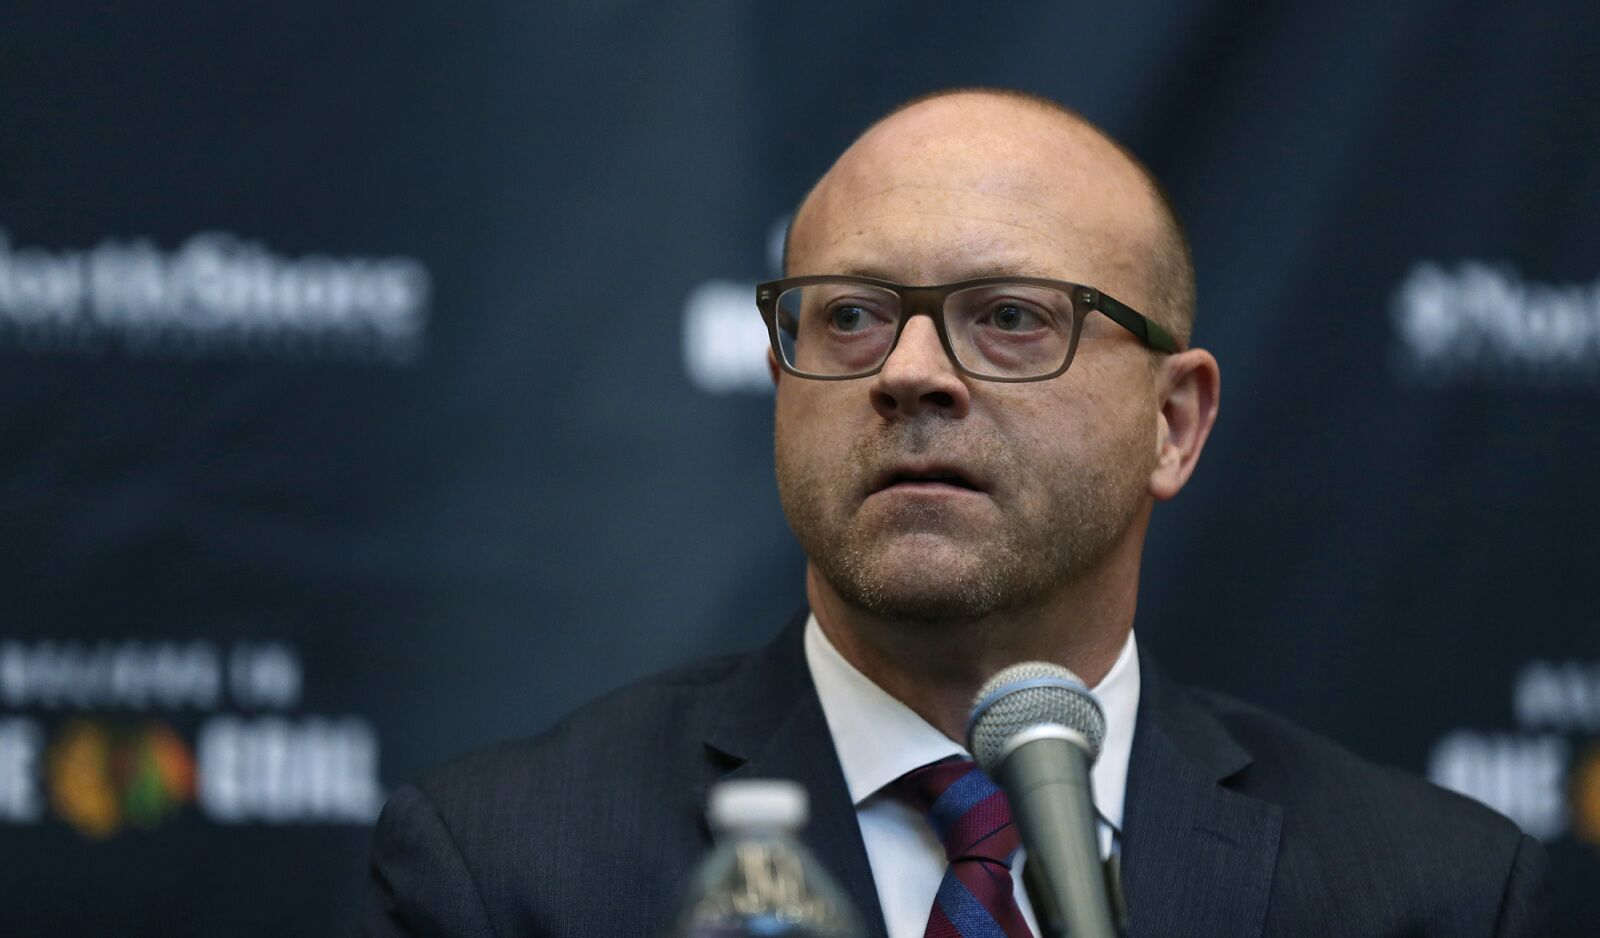 Chicago Blackhawks: It's time to fire general manager Stan Bowman